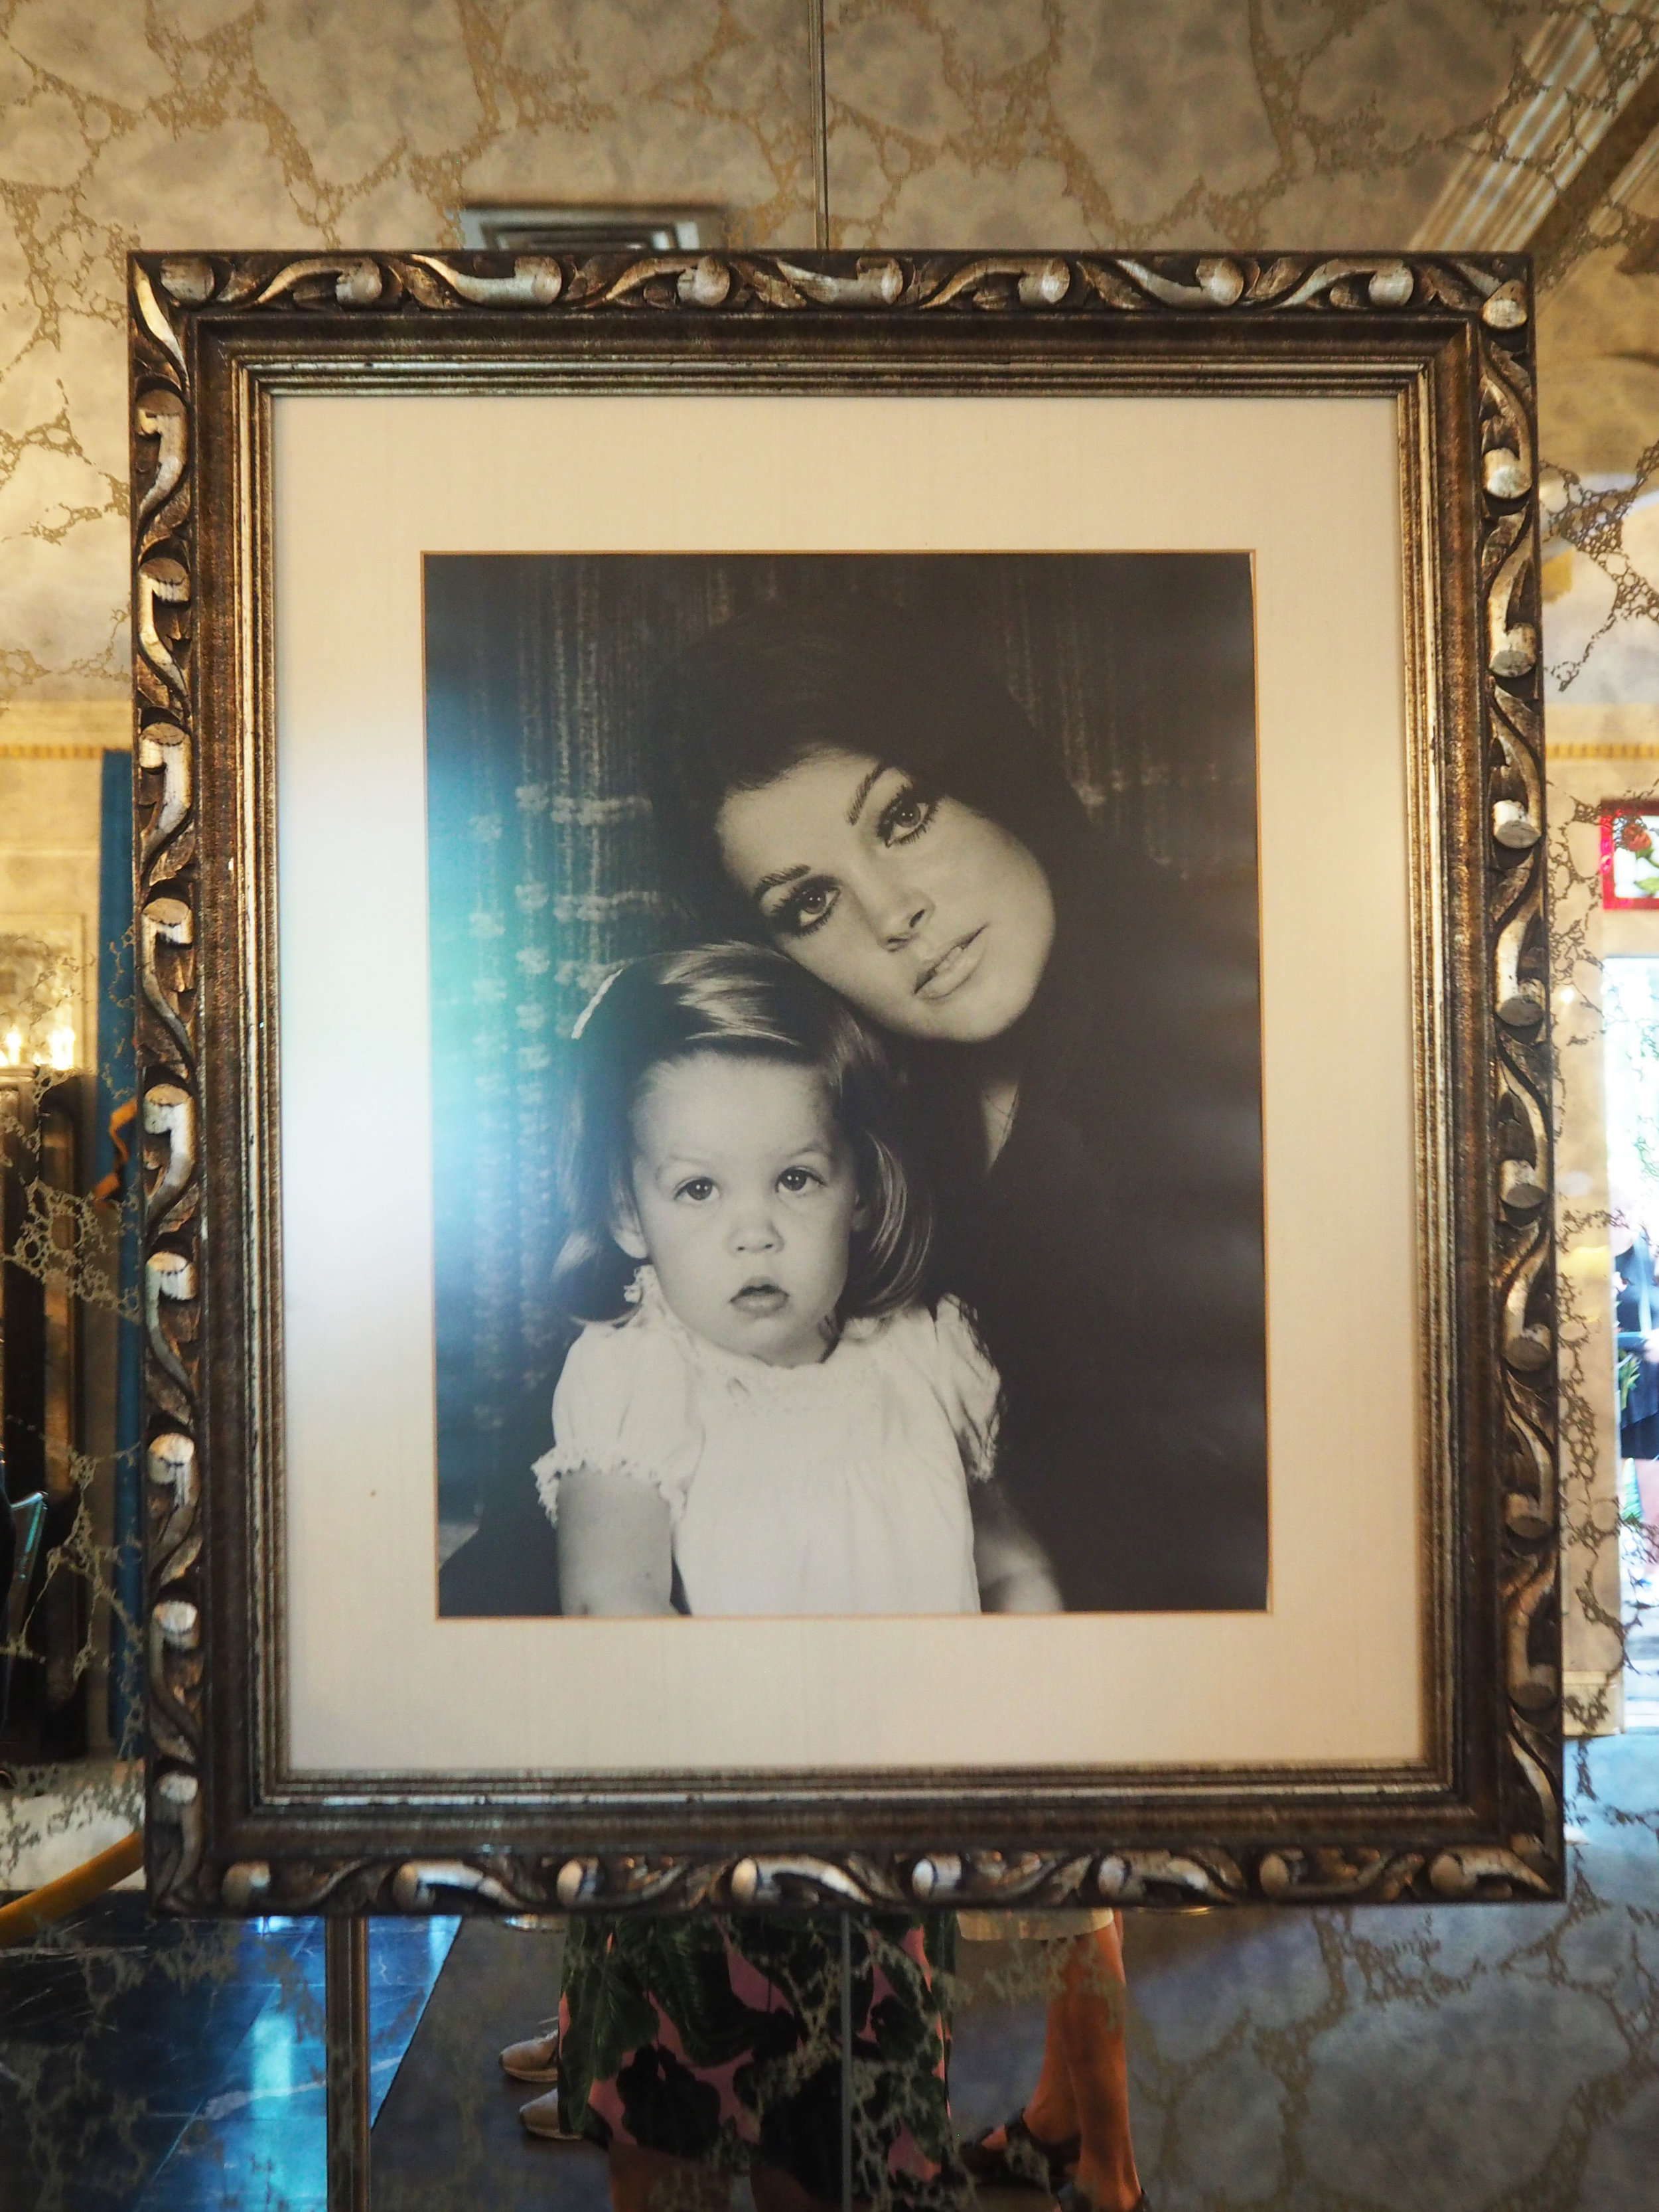 A portrait of Priscilla Presley with her daughter Lisa- Marie, hung inside the dining room inside Elvis Presley's Graceland. To see more pics, click on the photo.